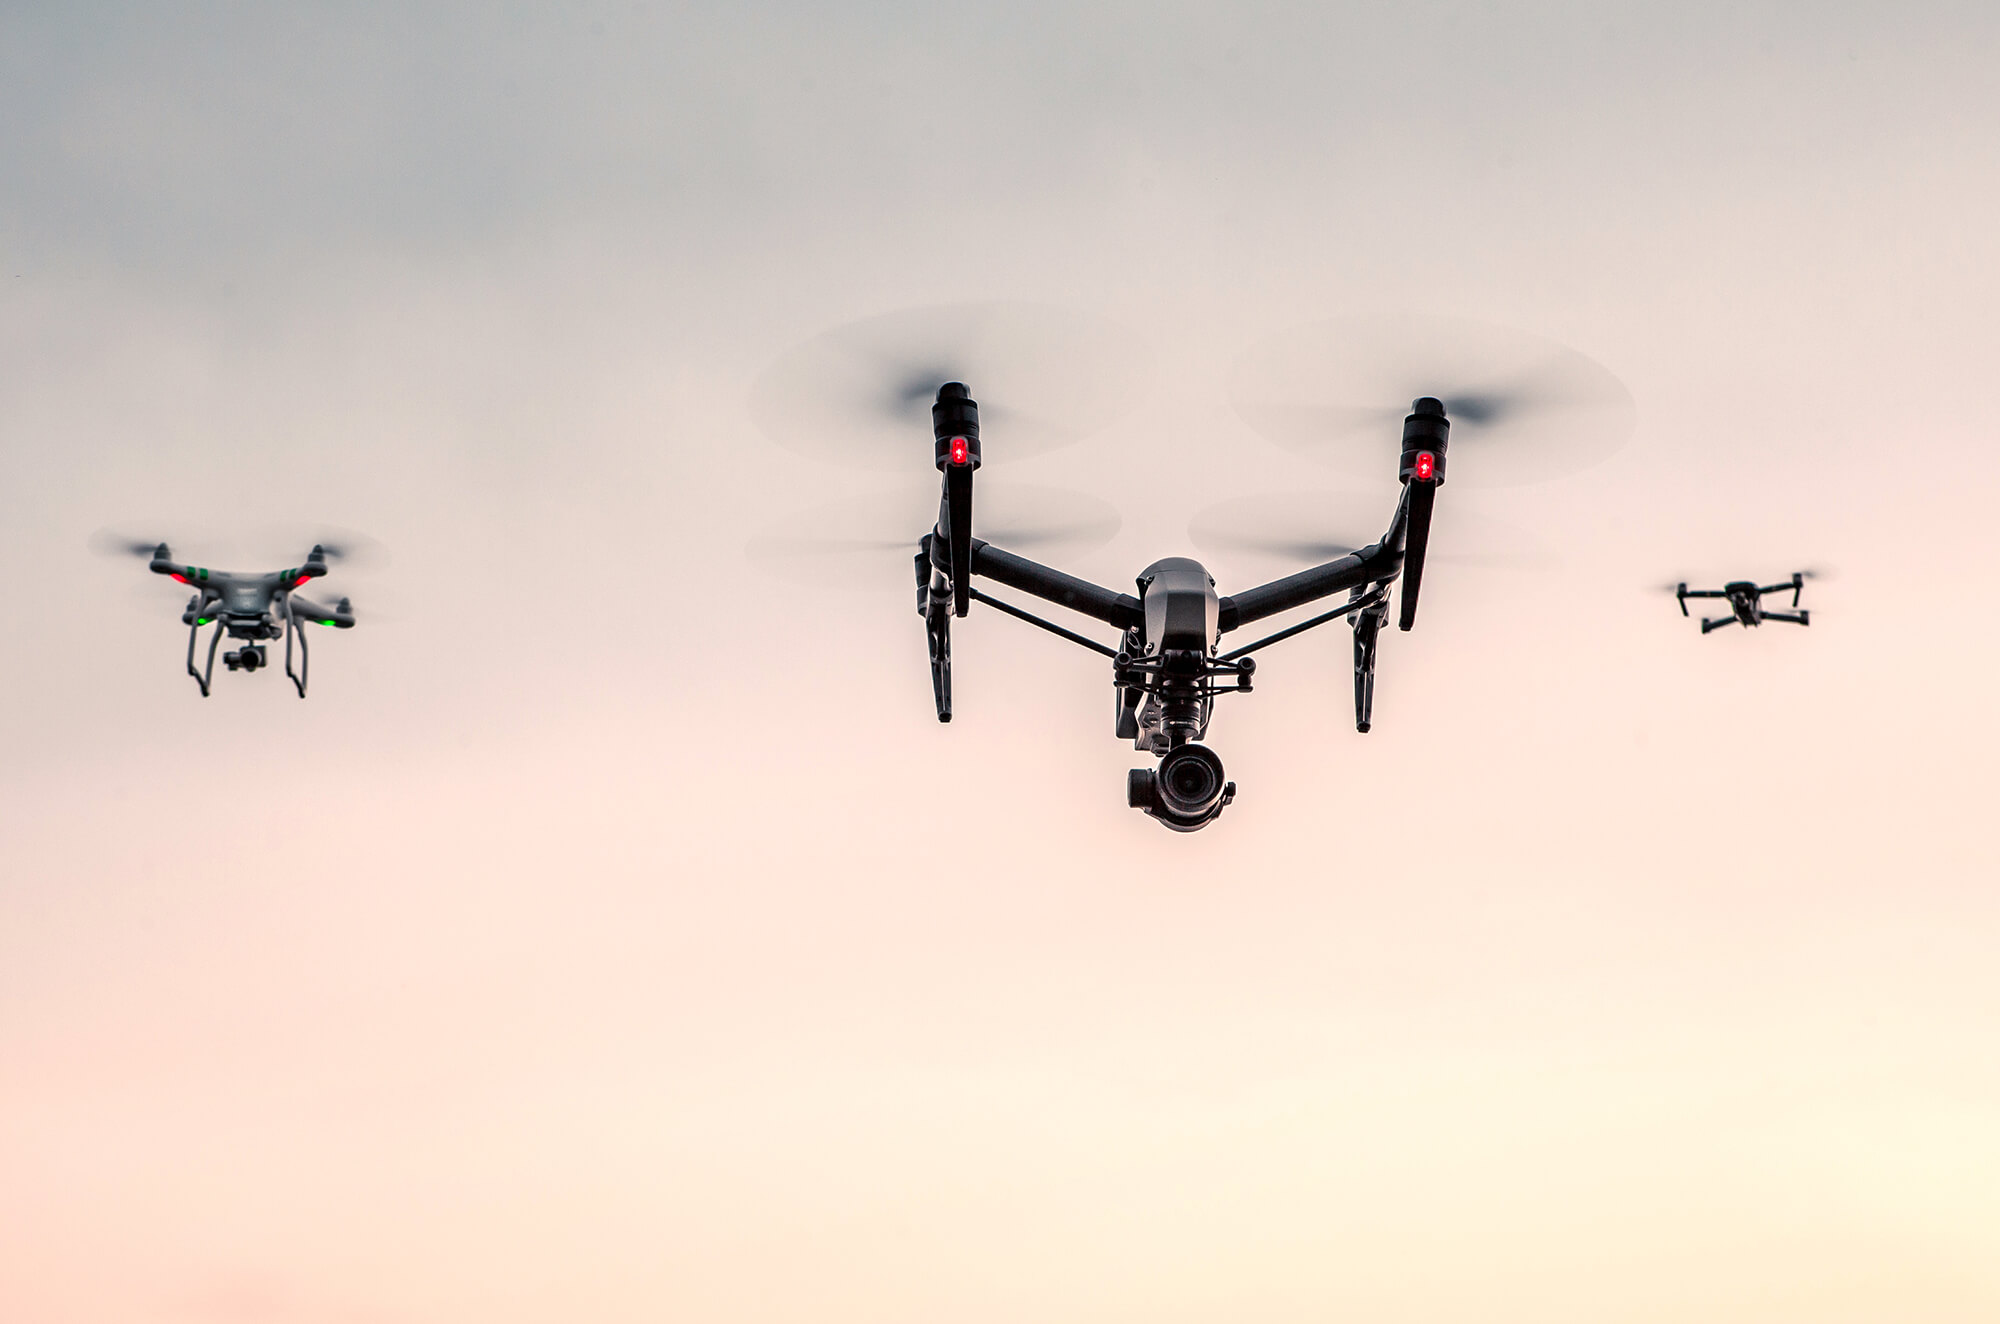 How to Fly a Drone: Beginner's Guide - DJI Guides